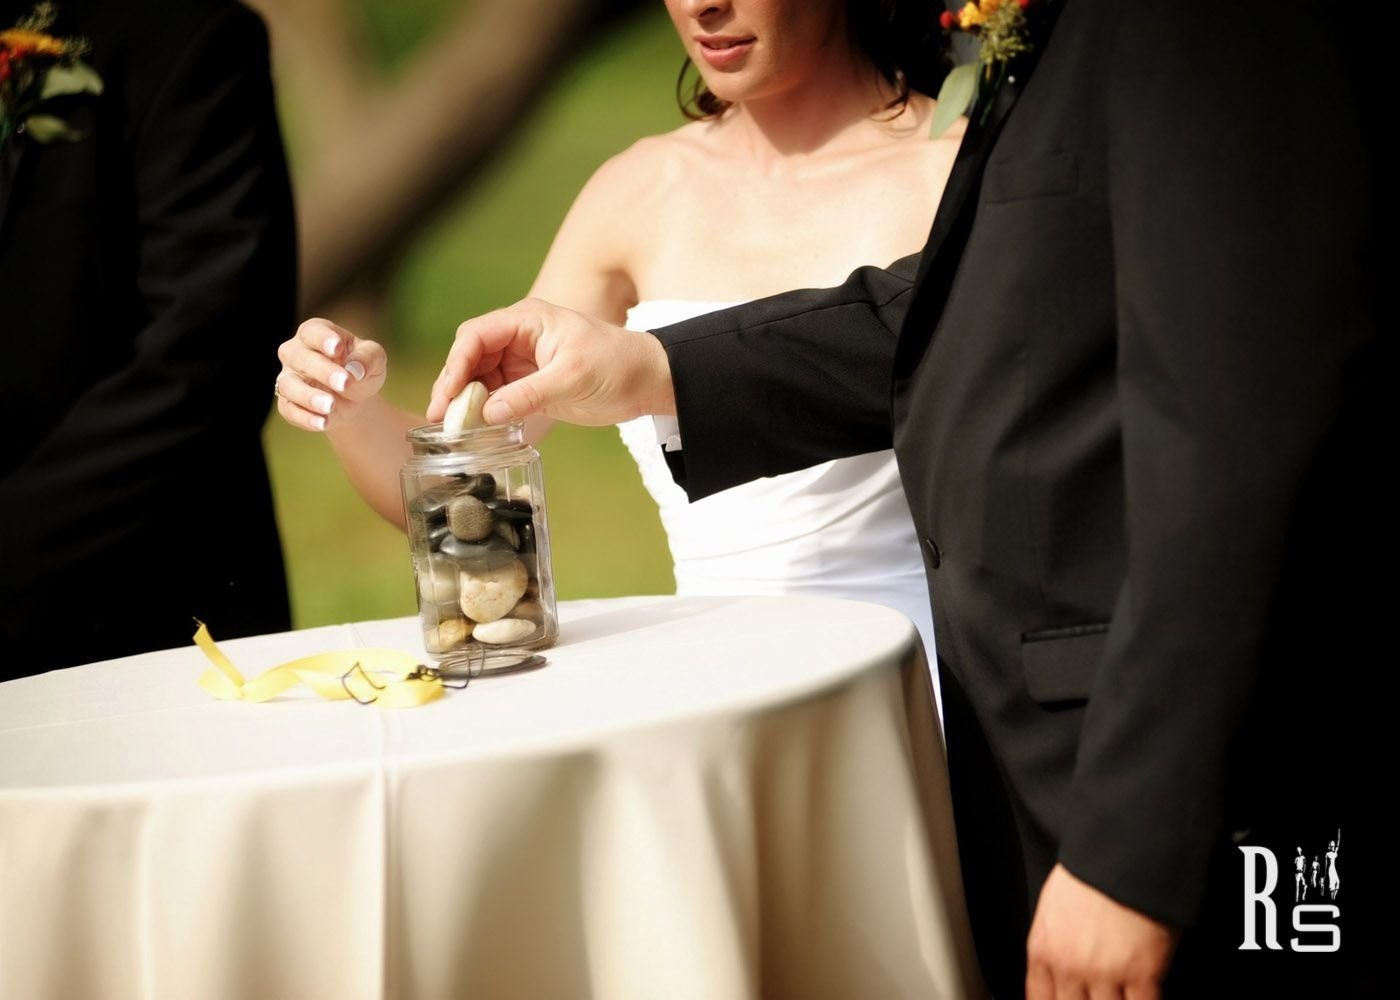 unique wedding ceremony ideas instead unity candle all - diy wedding